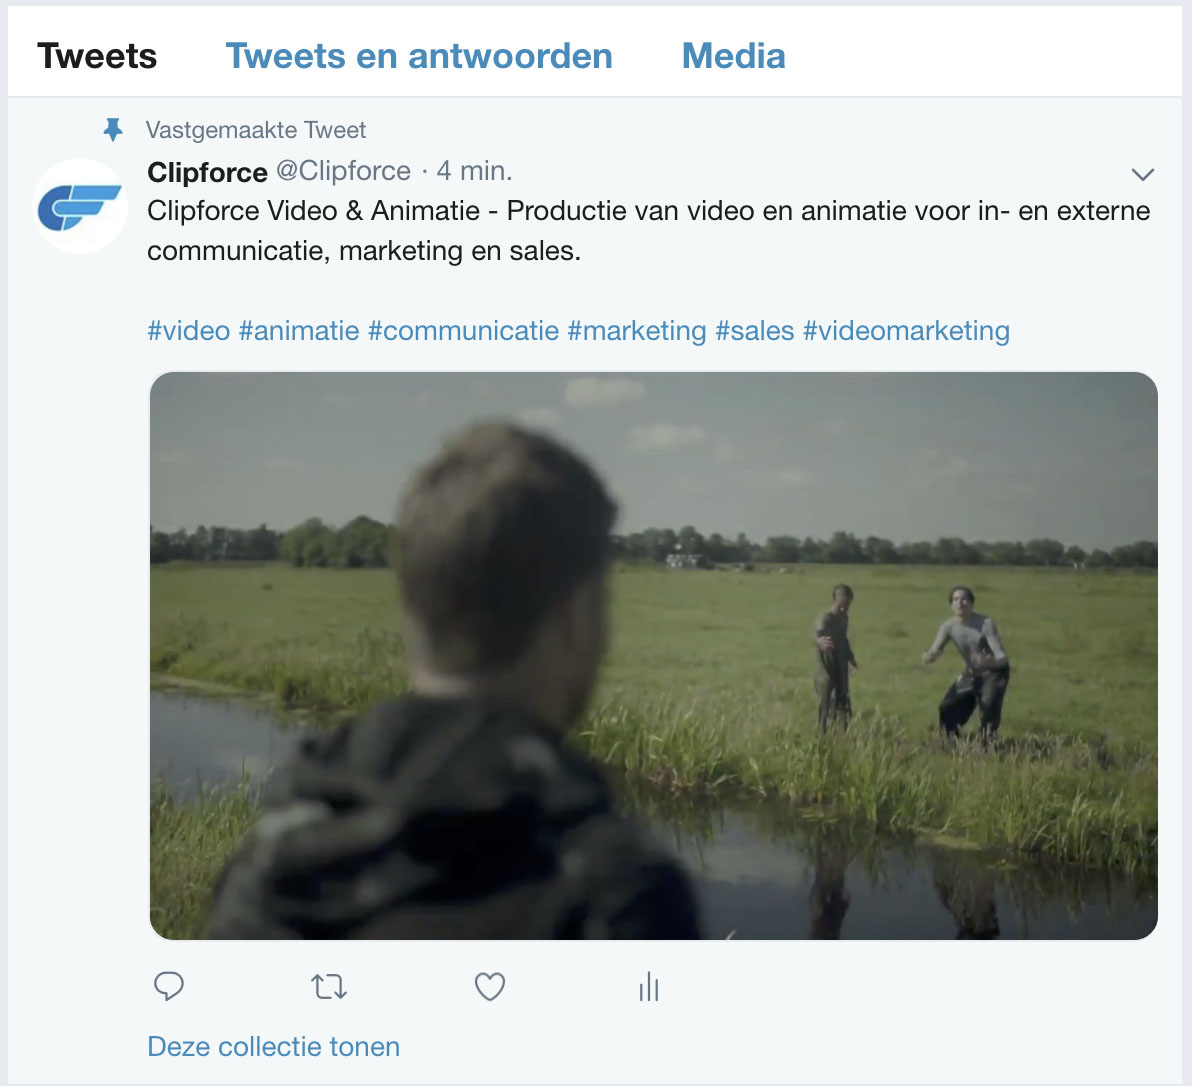 Vastpinnen tweet bovenaan pagina clipforce video animatie marketing communicatie